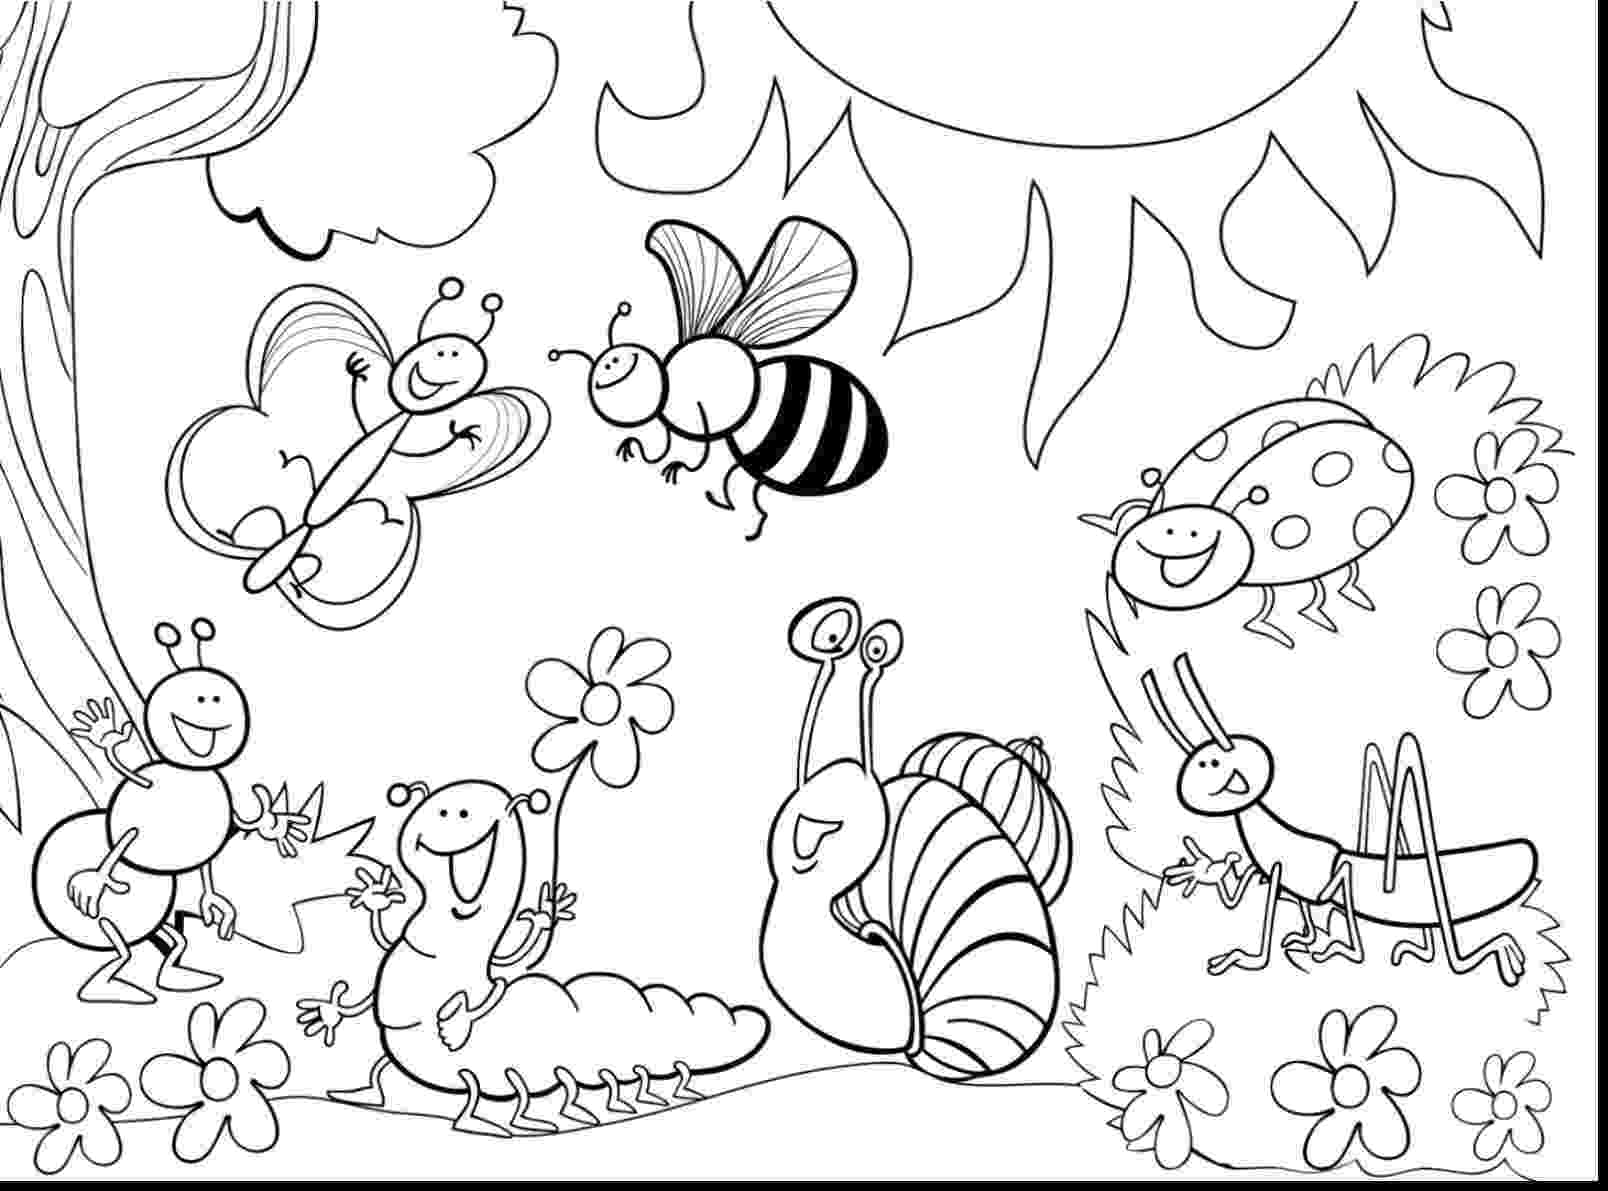 insect coloring sheets bug coloring pages bugs print new school ideas garden coloring insect sheets